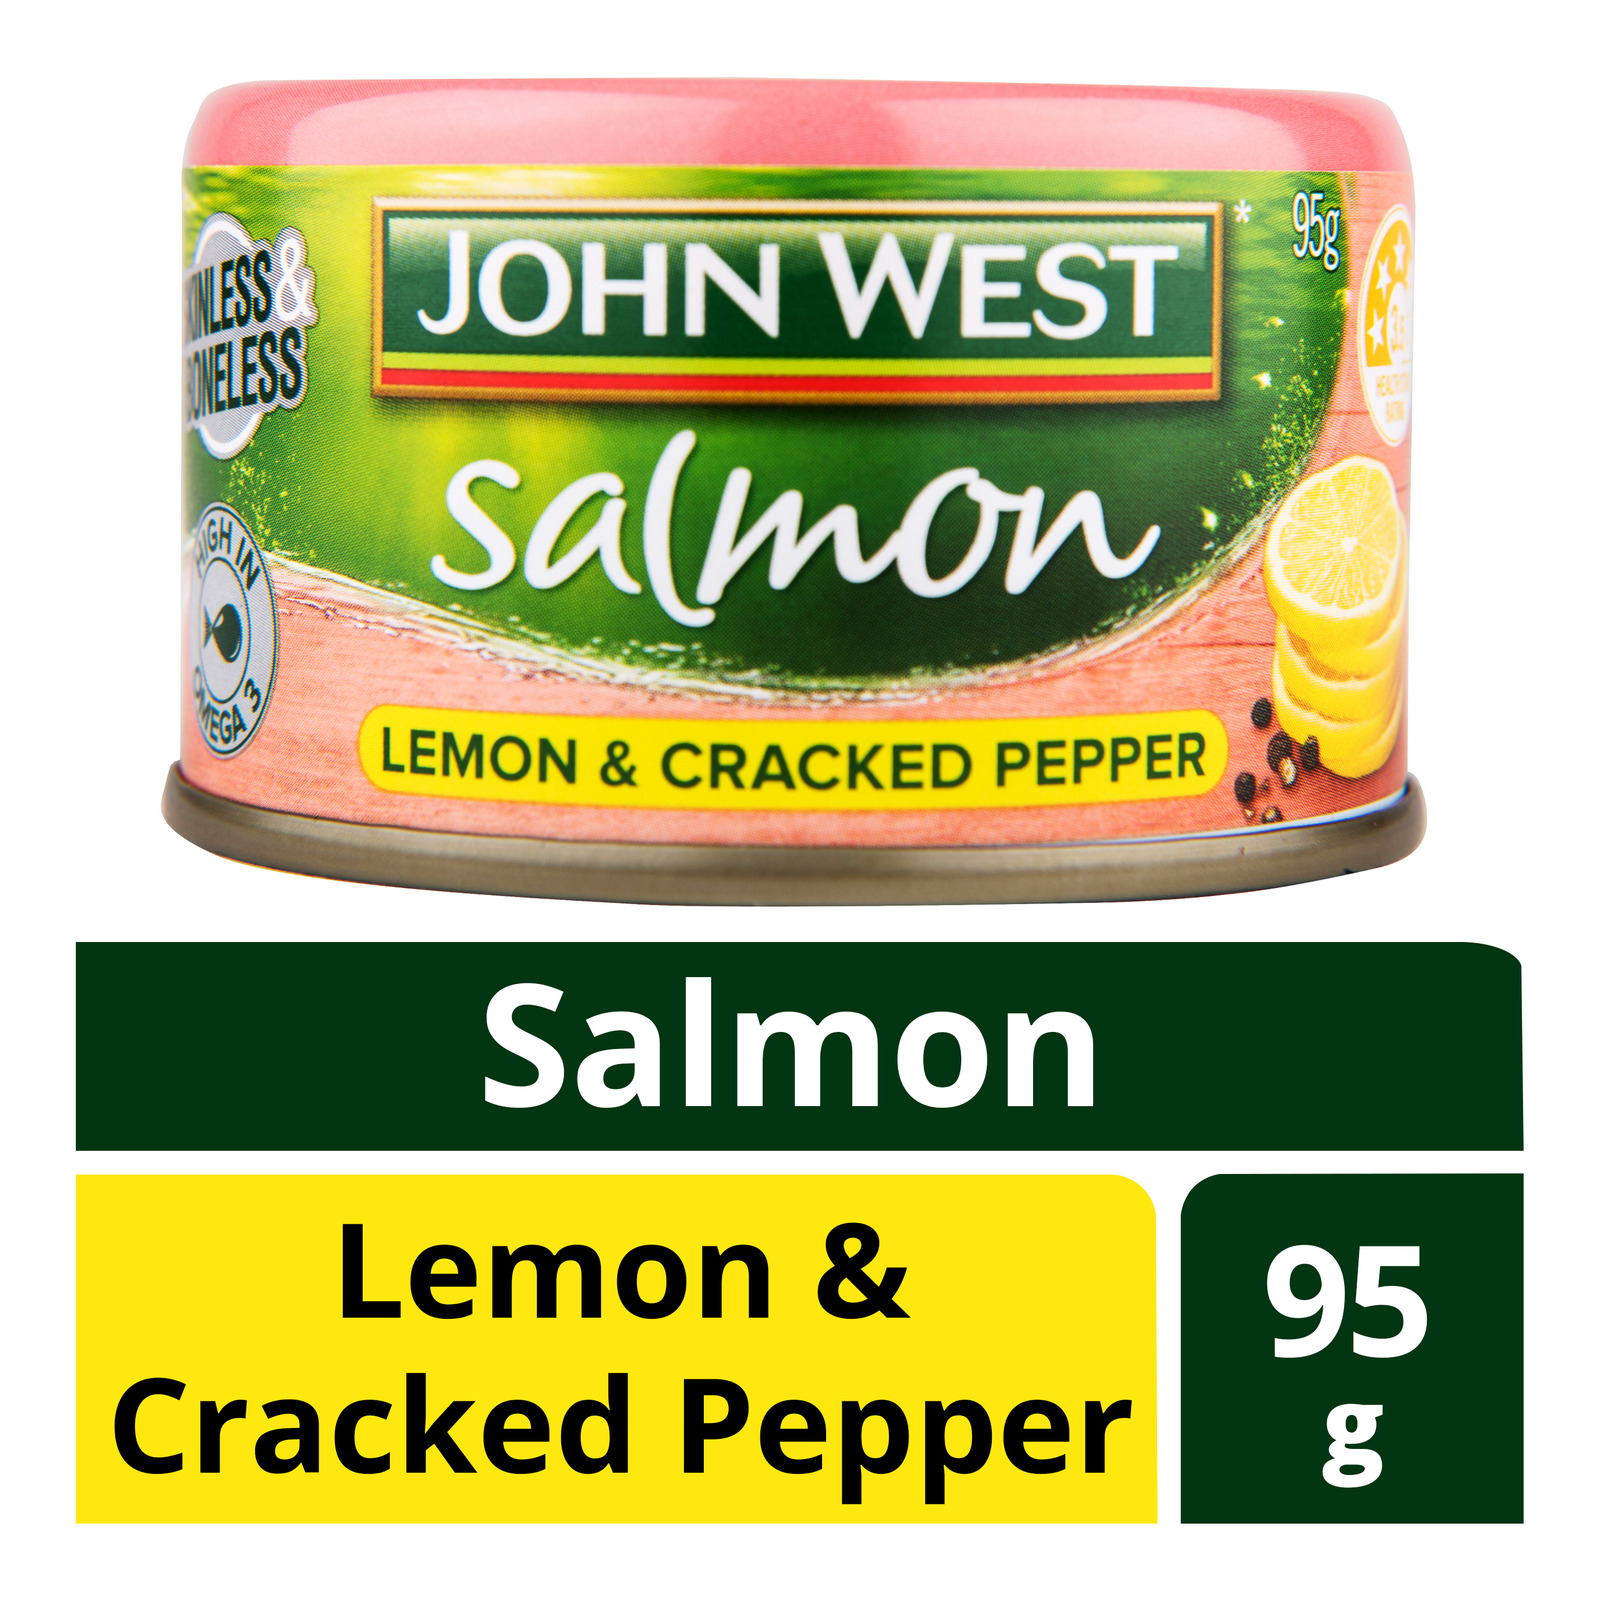 John West Salmon - Lemon & Cracked Pepper